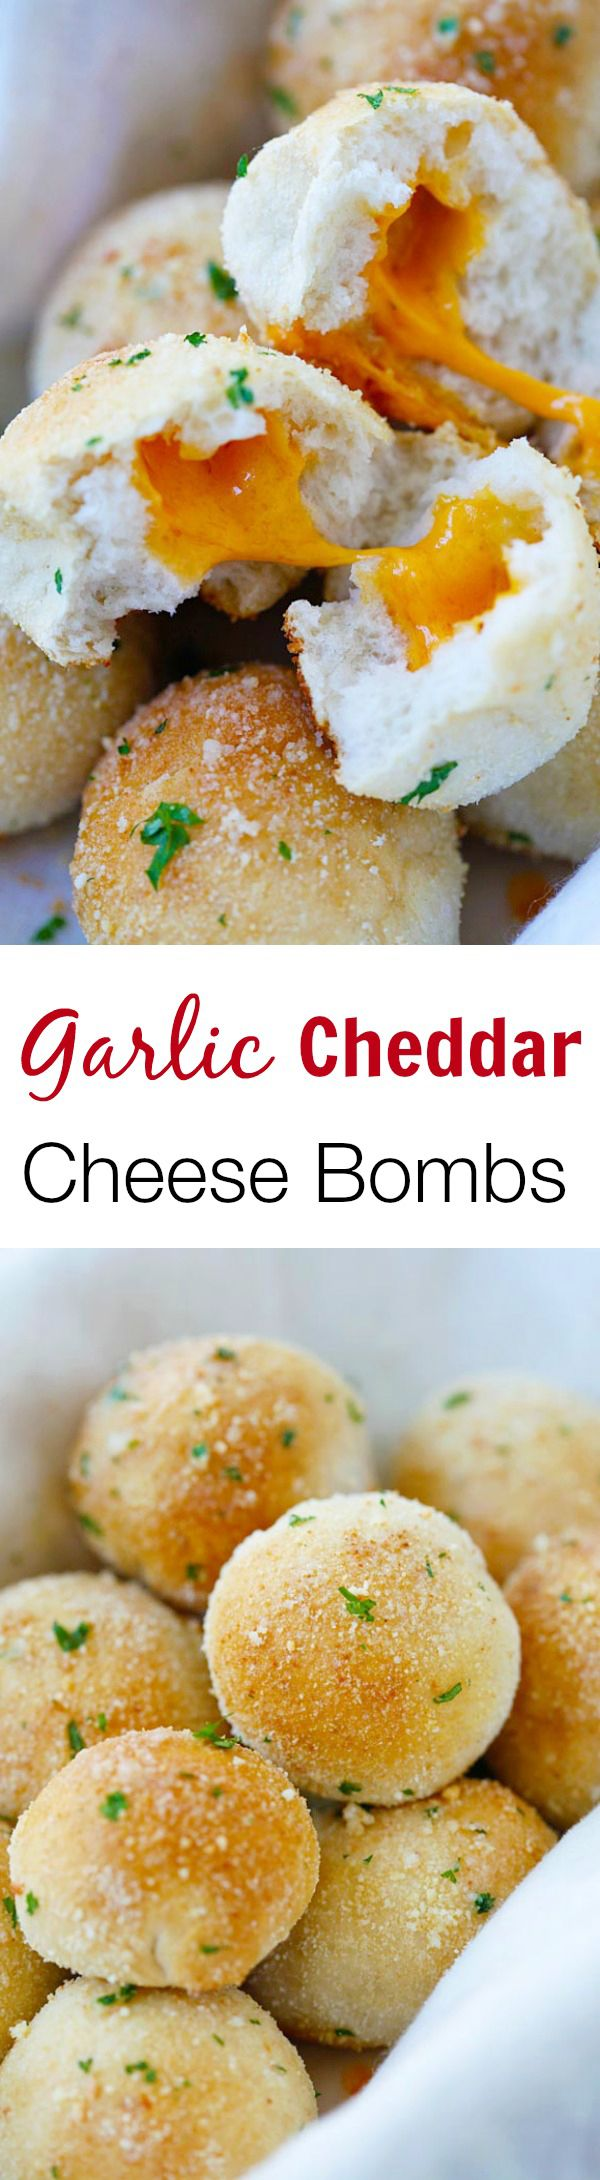 Garlic Cheddar Cheese Bombs – amazing cheese bomb biscuits loaded with Cheddar cheese & topped with Parmesan cheese.   rasamalaysia.com